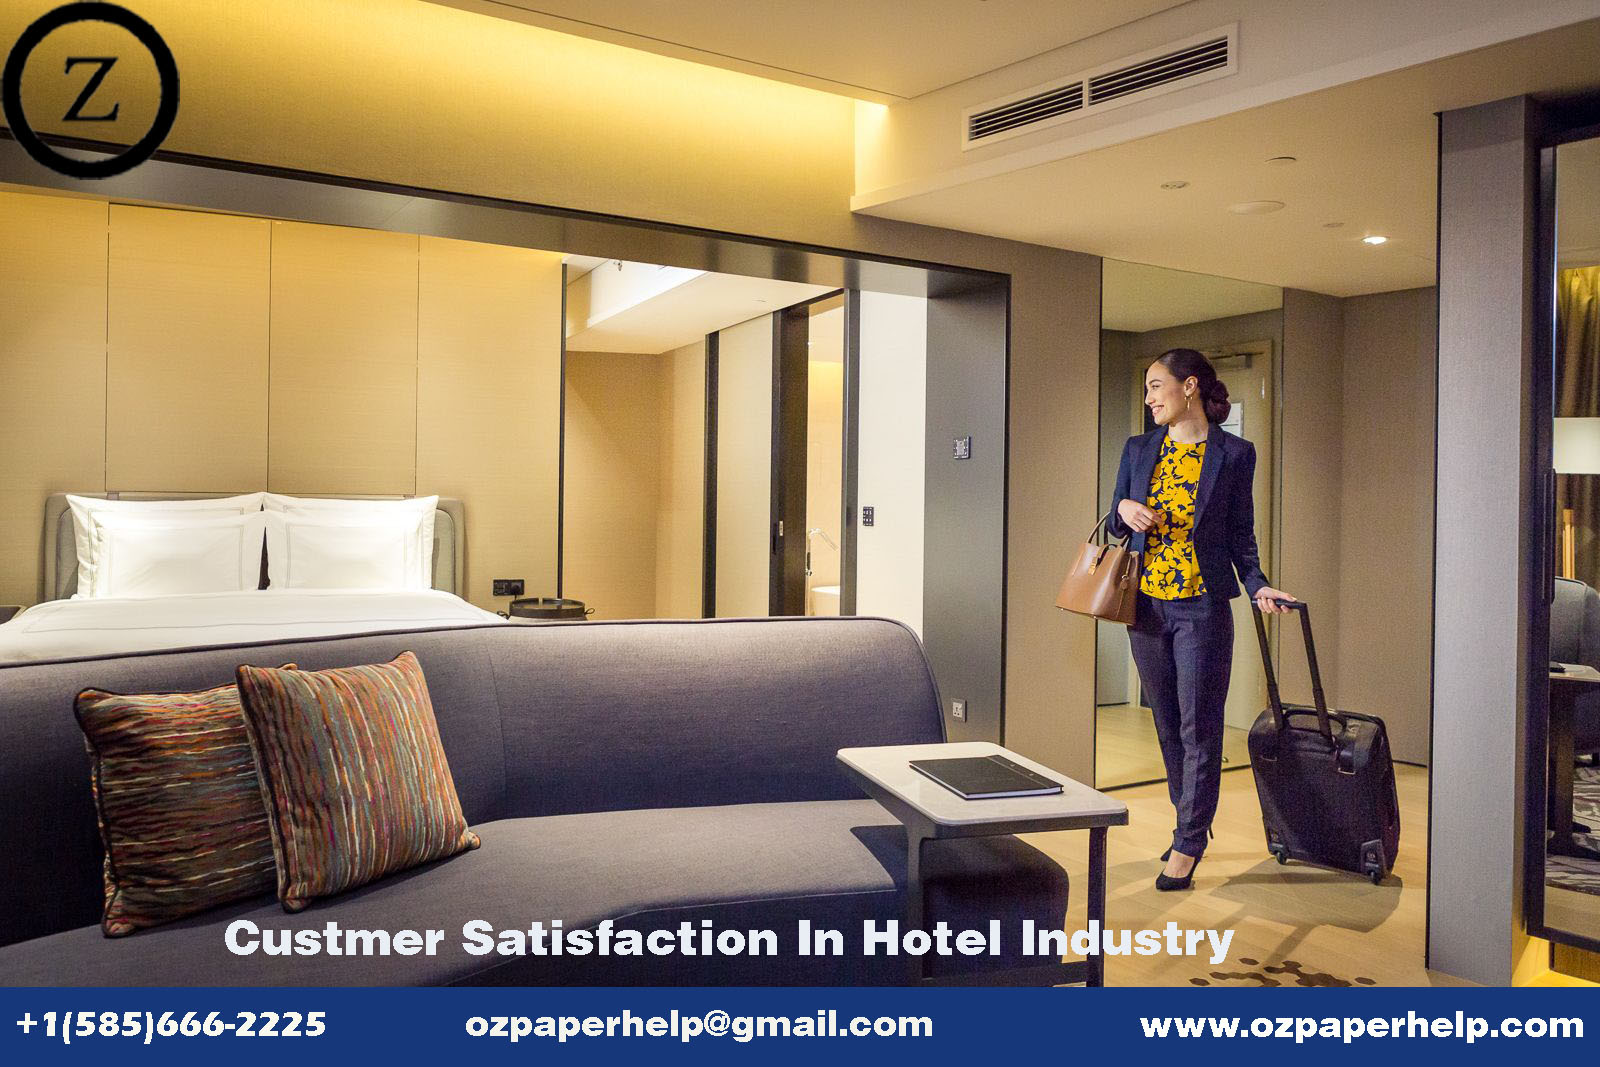 Custmer Satisfaction In Hotel Industry